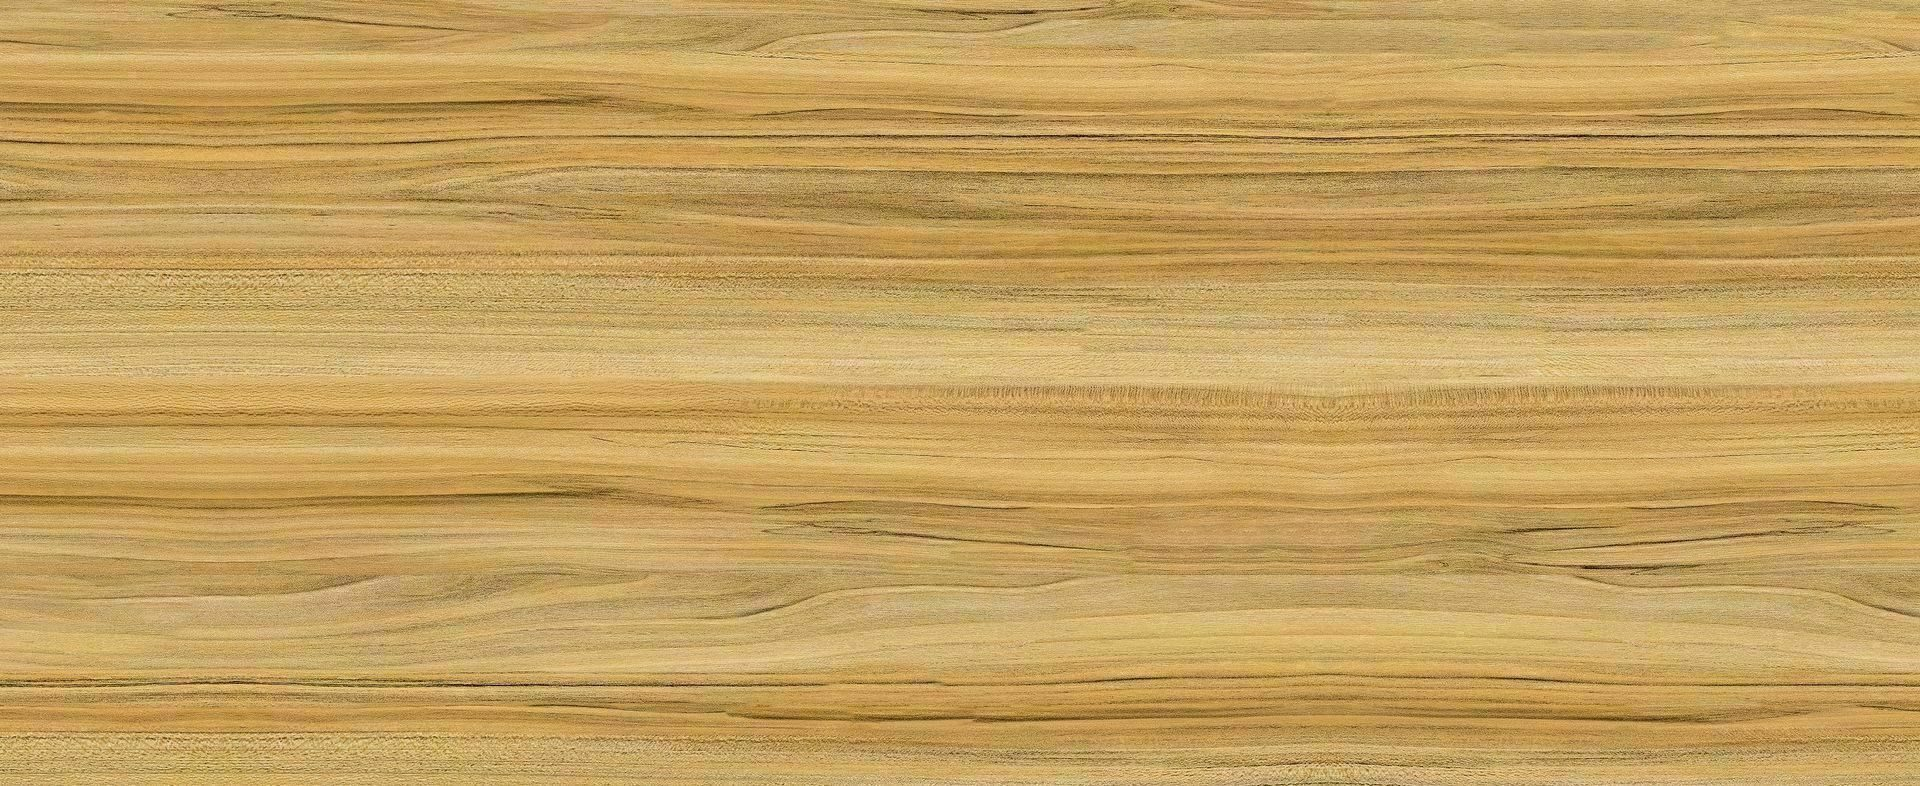 wood-floor-produce-trees-hardwood-oak-flooring-plywood-wood-grain-teak-wood-flooring-sandalwood-laminate-flooring-wood-stain-yellow-wood-1161838